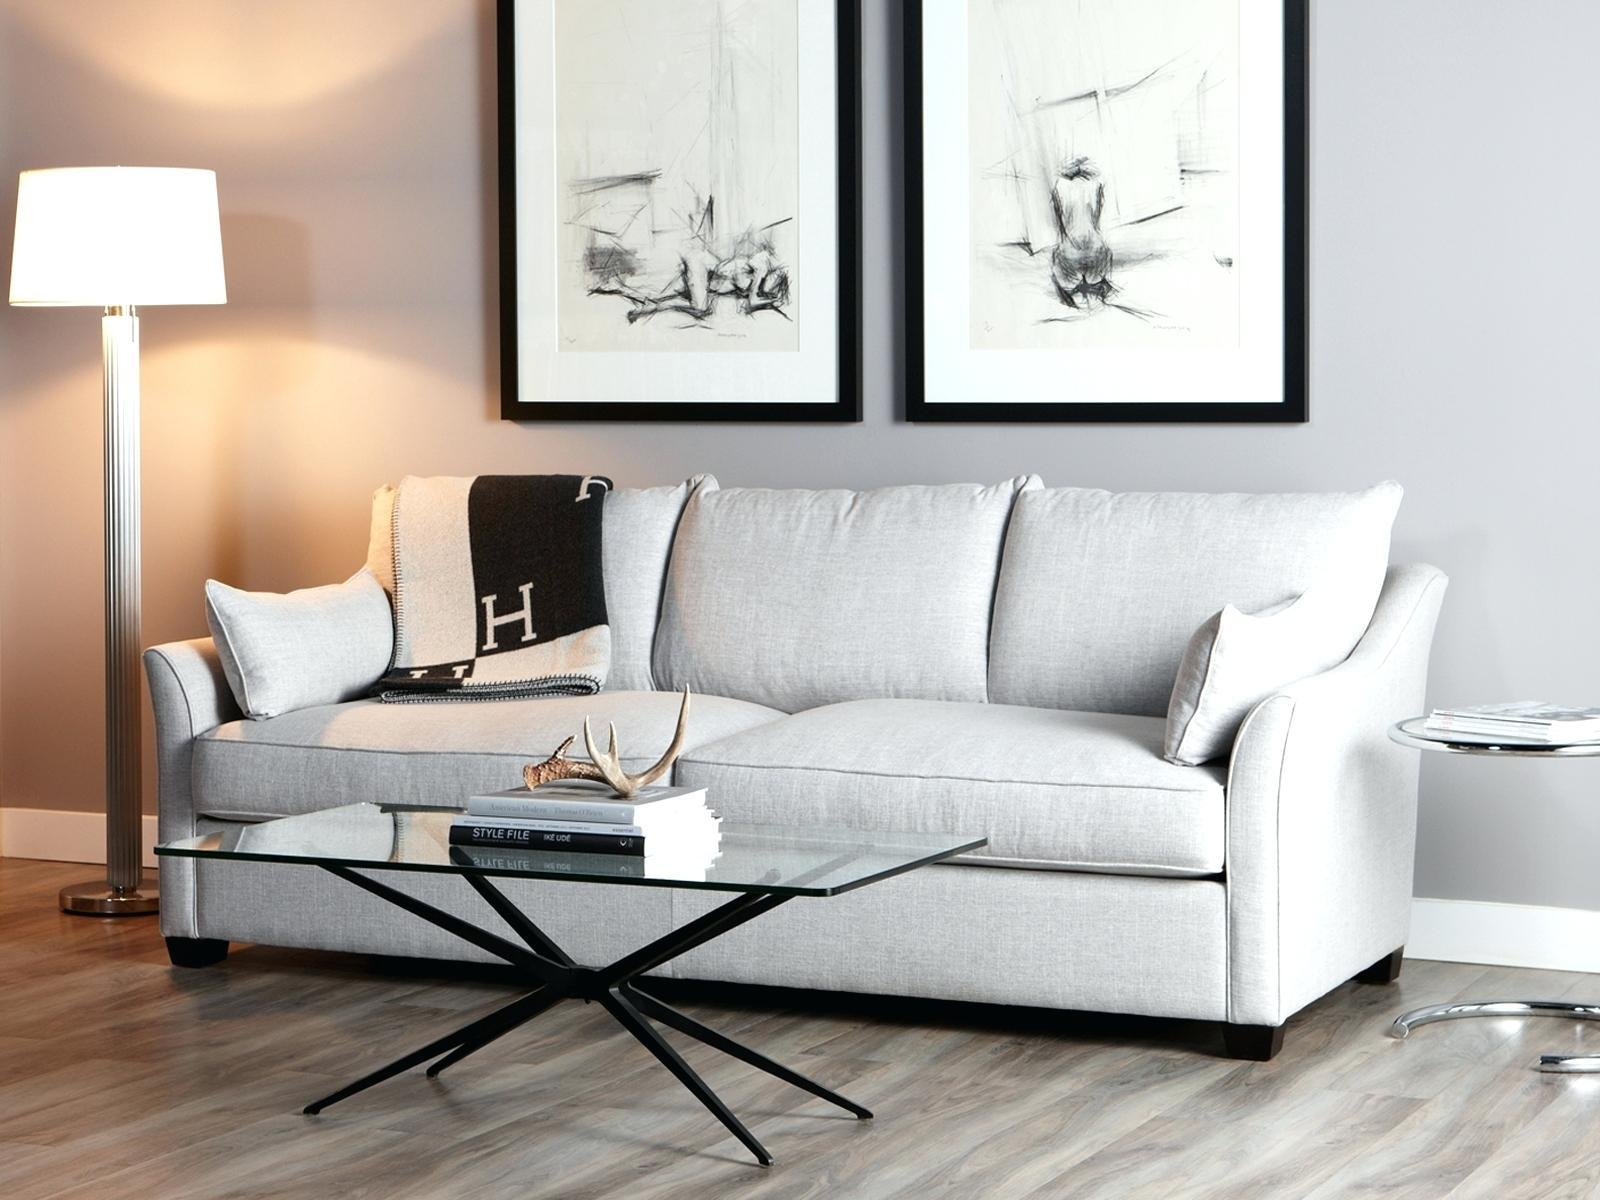 Light Tan Leather Sofa Home Brentwood Classics Gene Fresh And With Regard To Light Tan Leather Sofas (View 18 of 20)